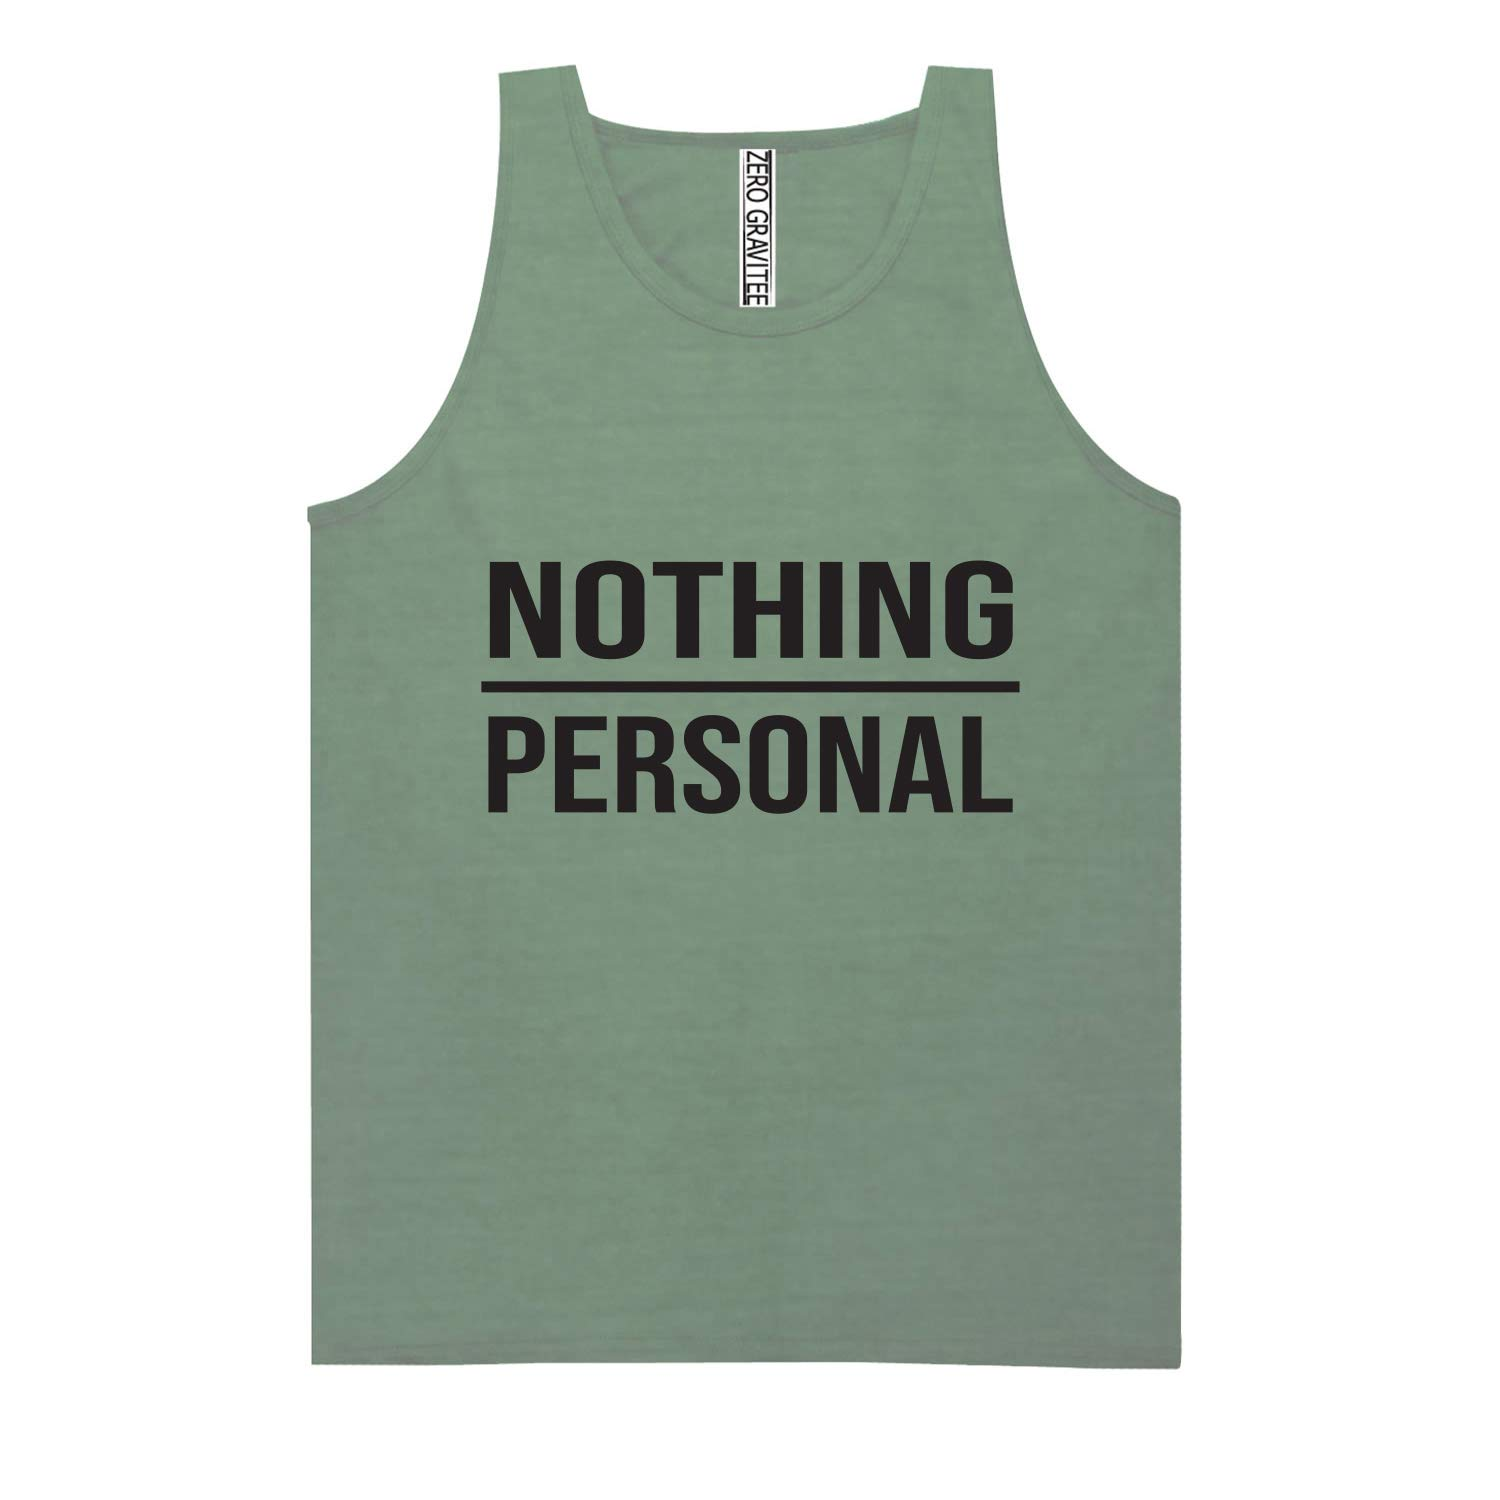 Nothing Personal Adult Pigment Dye Tank Top